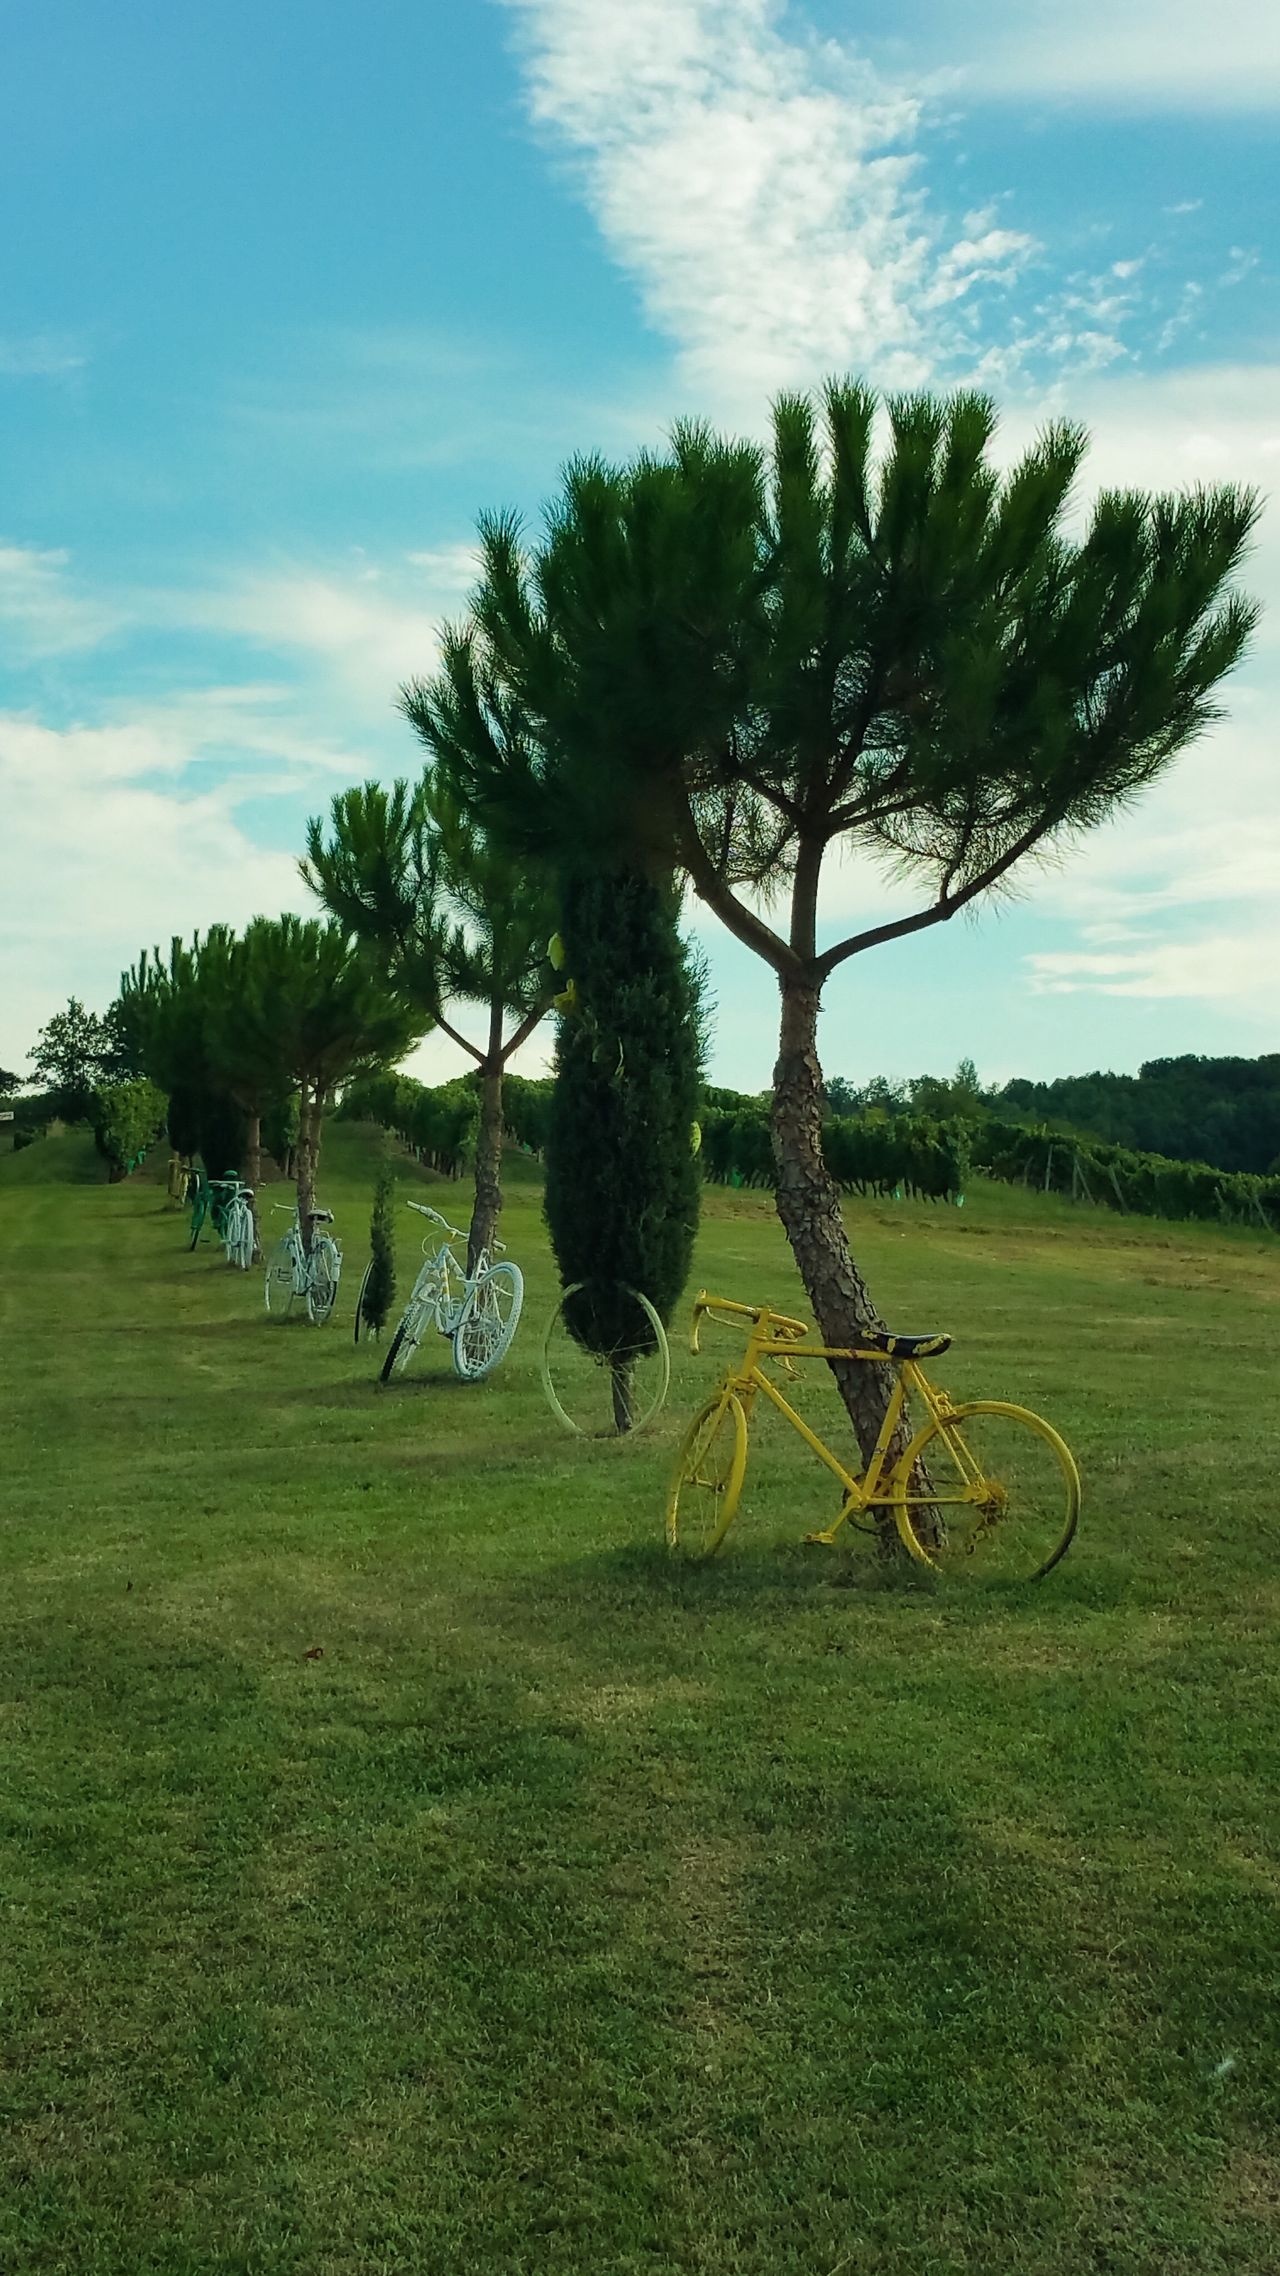 Bicycles. Monbazillac. Bicycle Bicycles Bicycle Parking Bicycling Monbazzilac Landscape Landscape_photography Bicicletta Trasportation Capture The Moment EyeEm Best Shots EyeEm Gallery